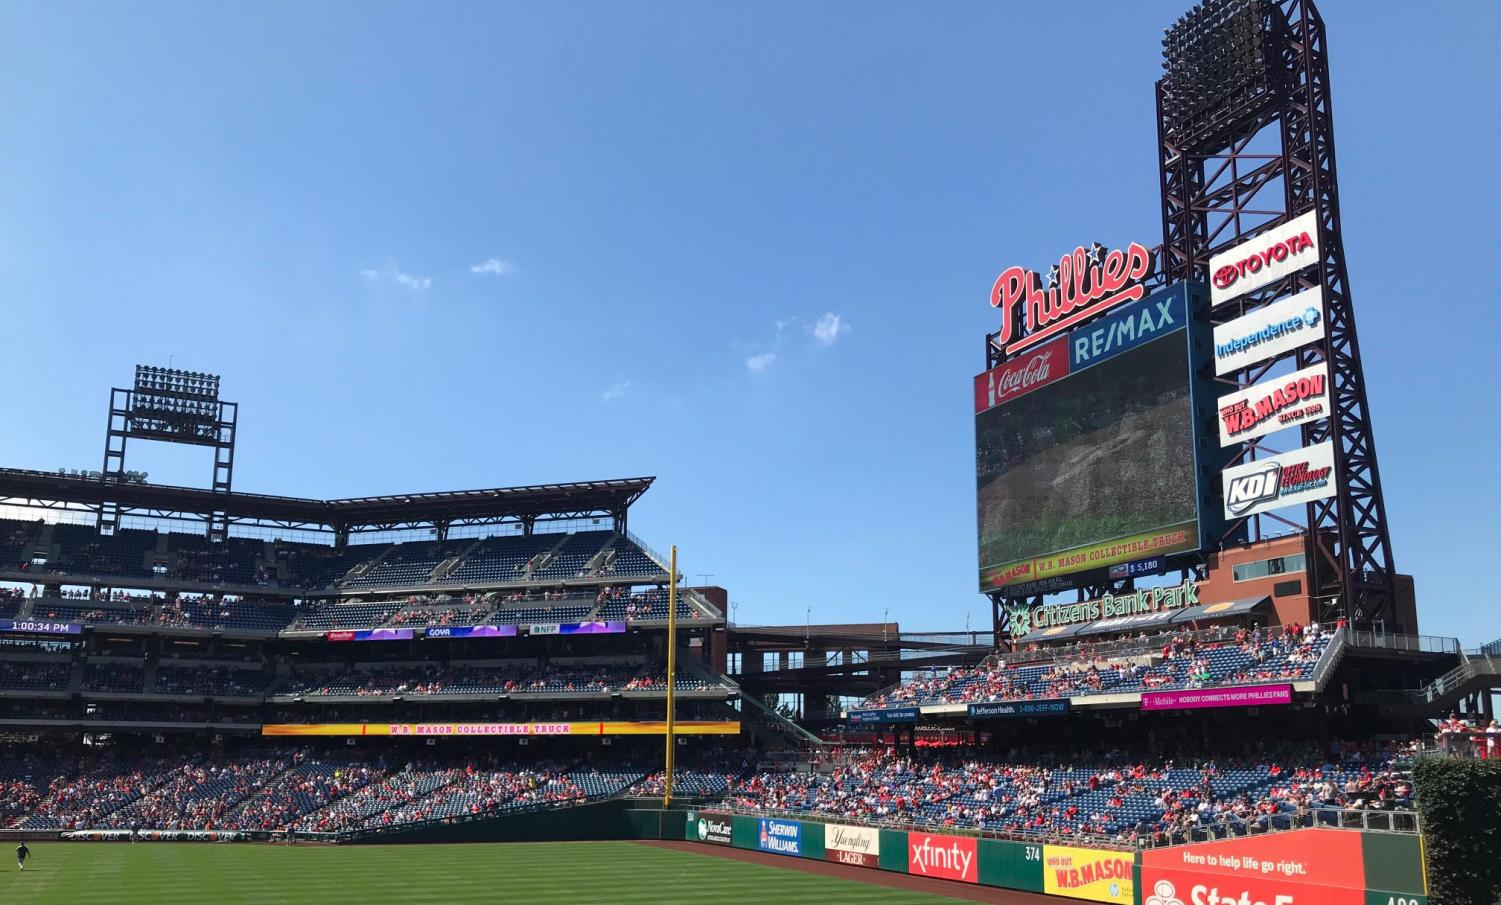 On a blazing-hot September 15th, 2019, the Philadelphia Phillies fall to the Boston Red Sox, 6-3.